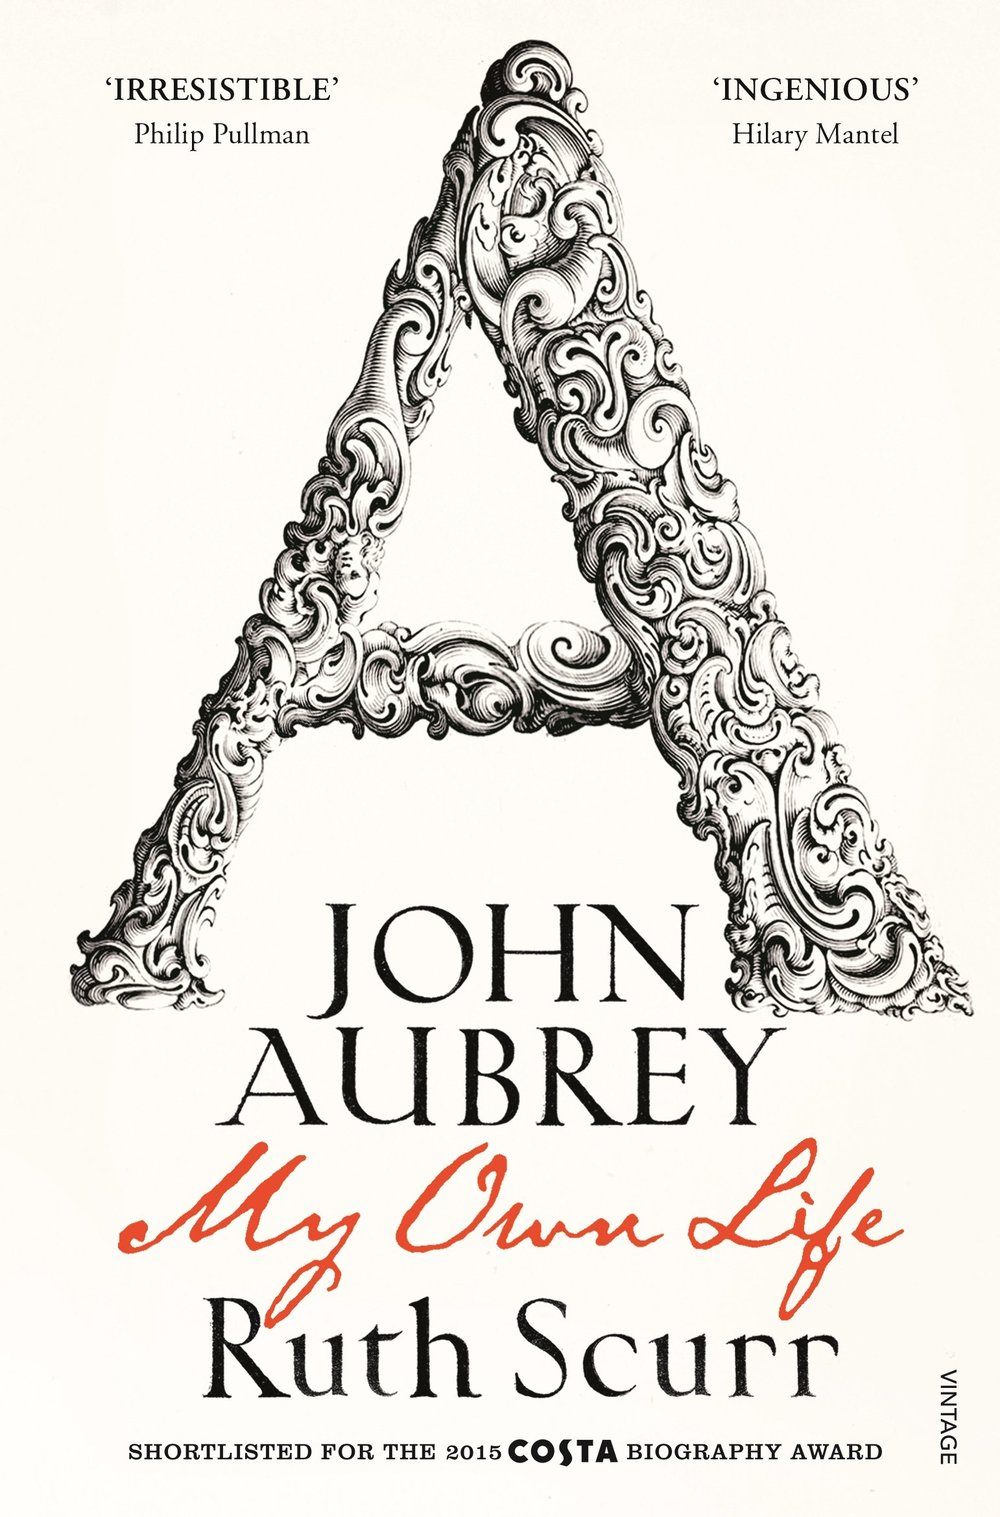 John Aubrey My Own Life by Ruth Scurr cover 2.jpg